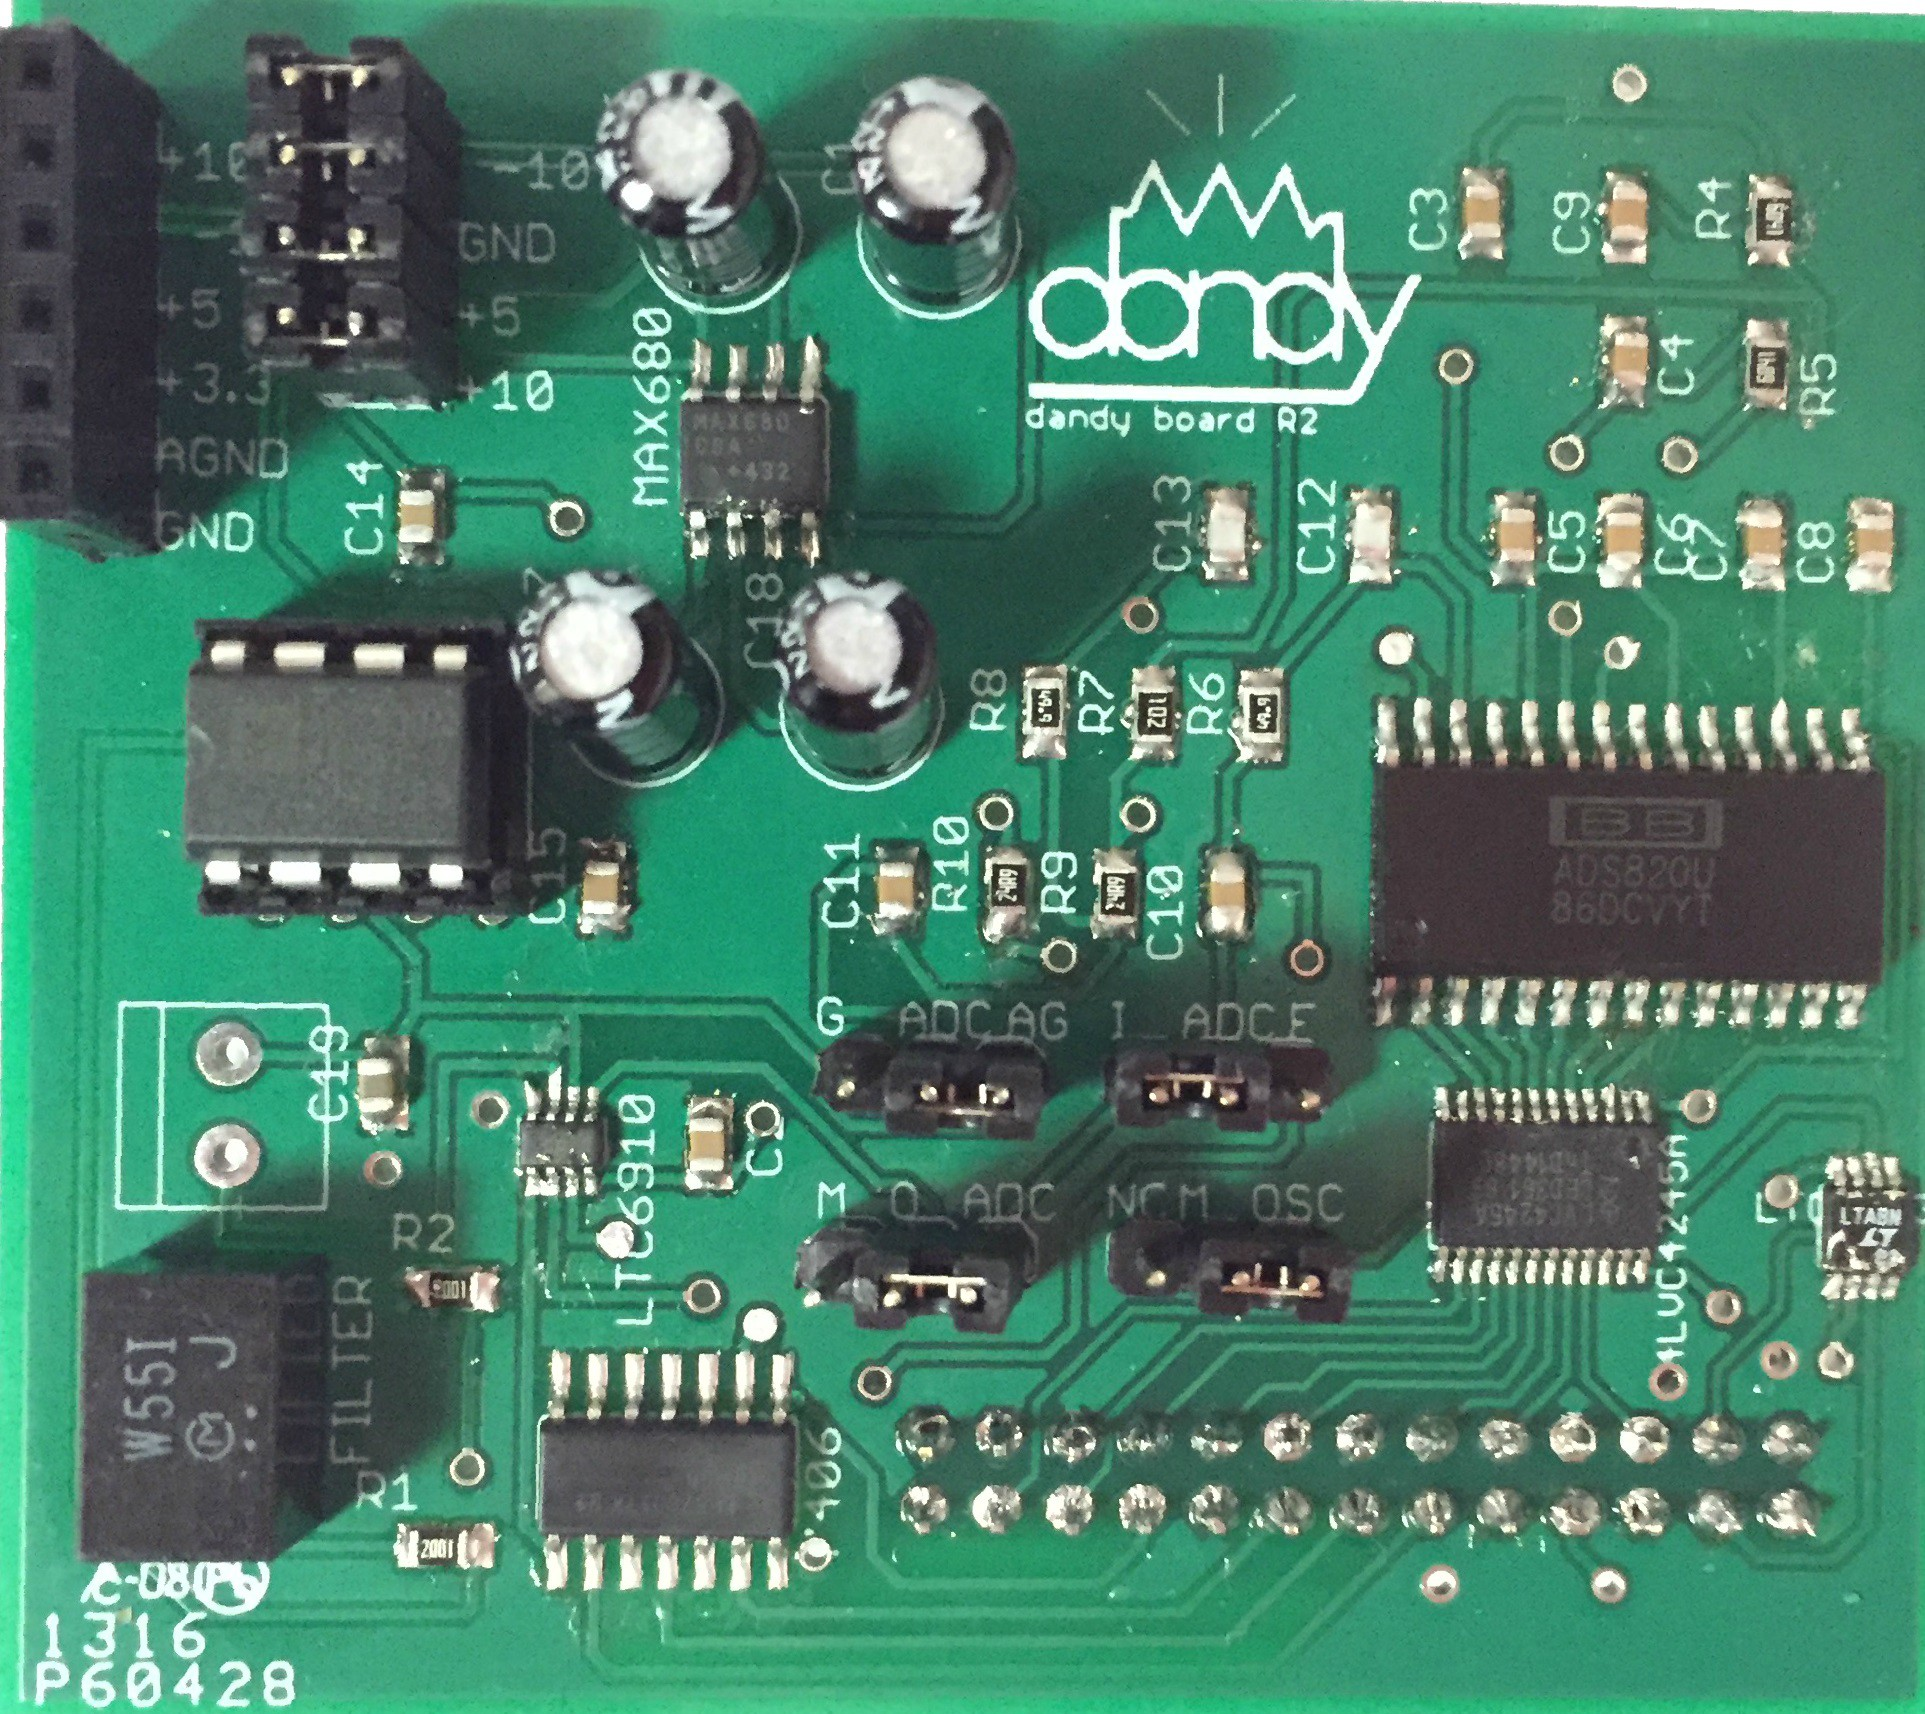 Affordable Spectrum Analzyer Audio Analyzer Circuit Electronics Projects Circuits Below Is A Picture Of The Board Once Assembled